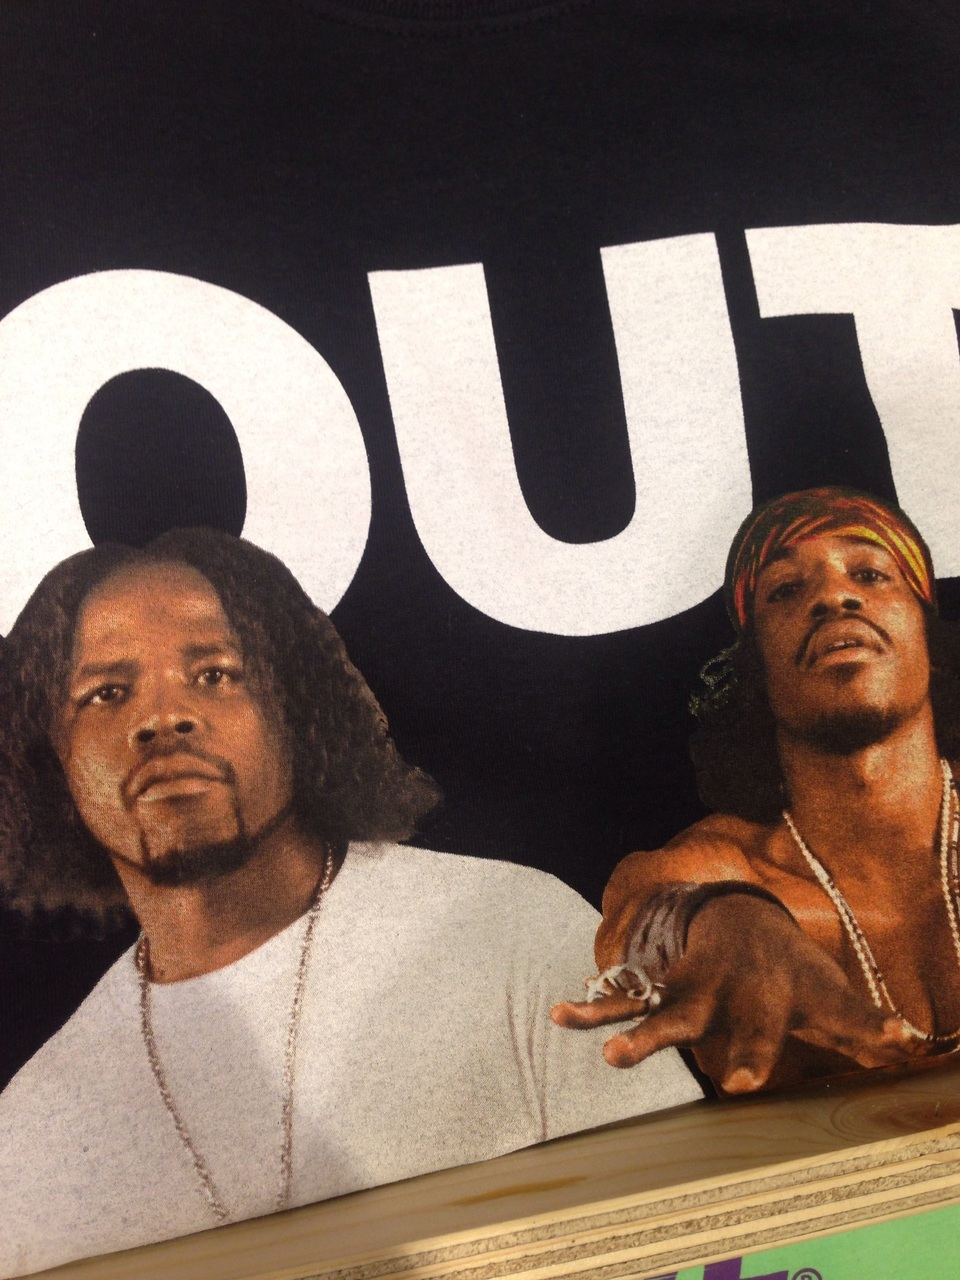 90s and outkast image